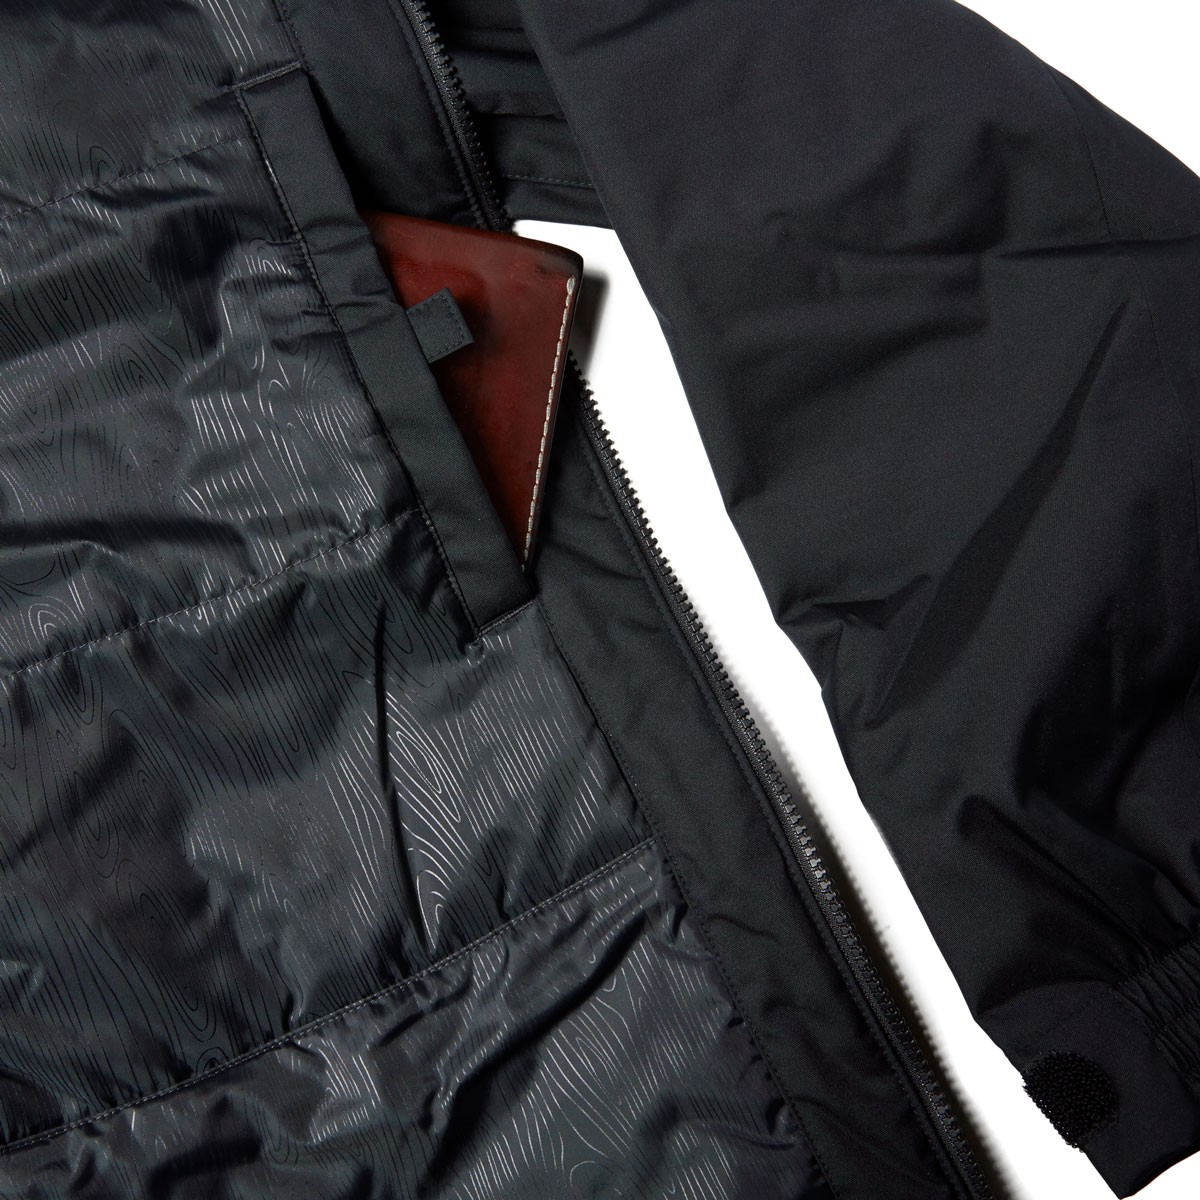 70c464534e2b Nike SB Empire Jacket - Black Anthracite White